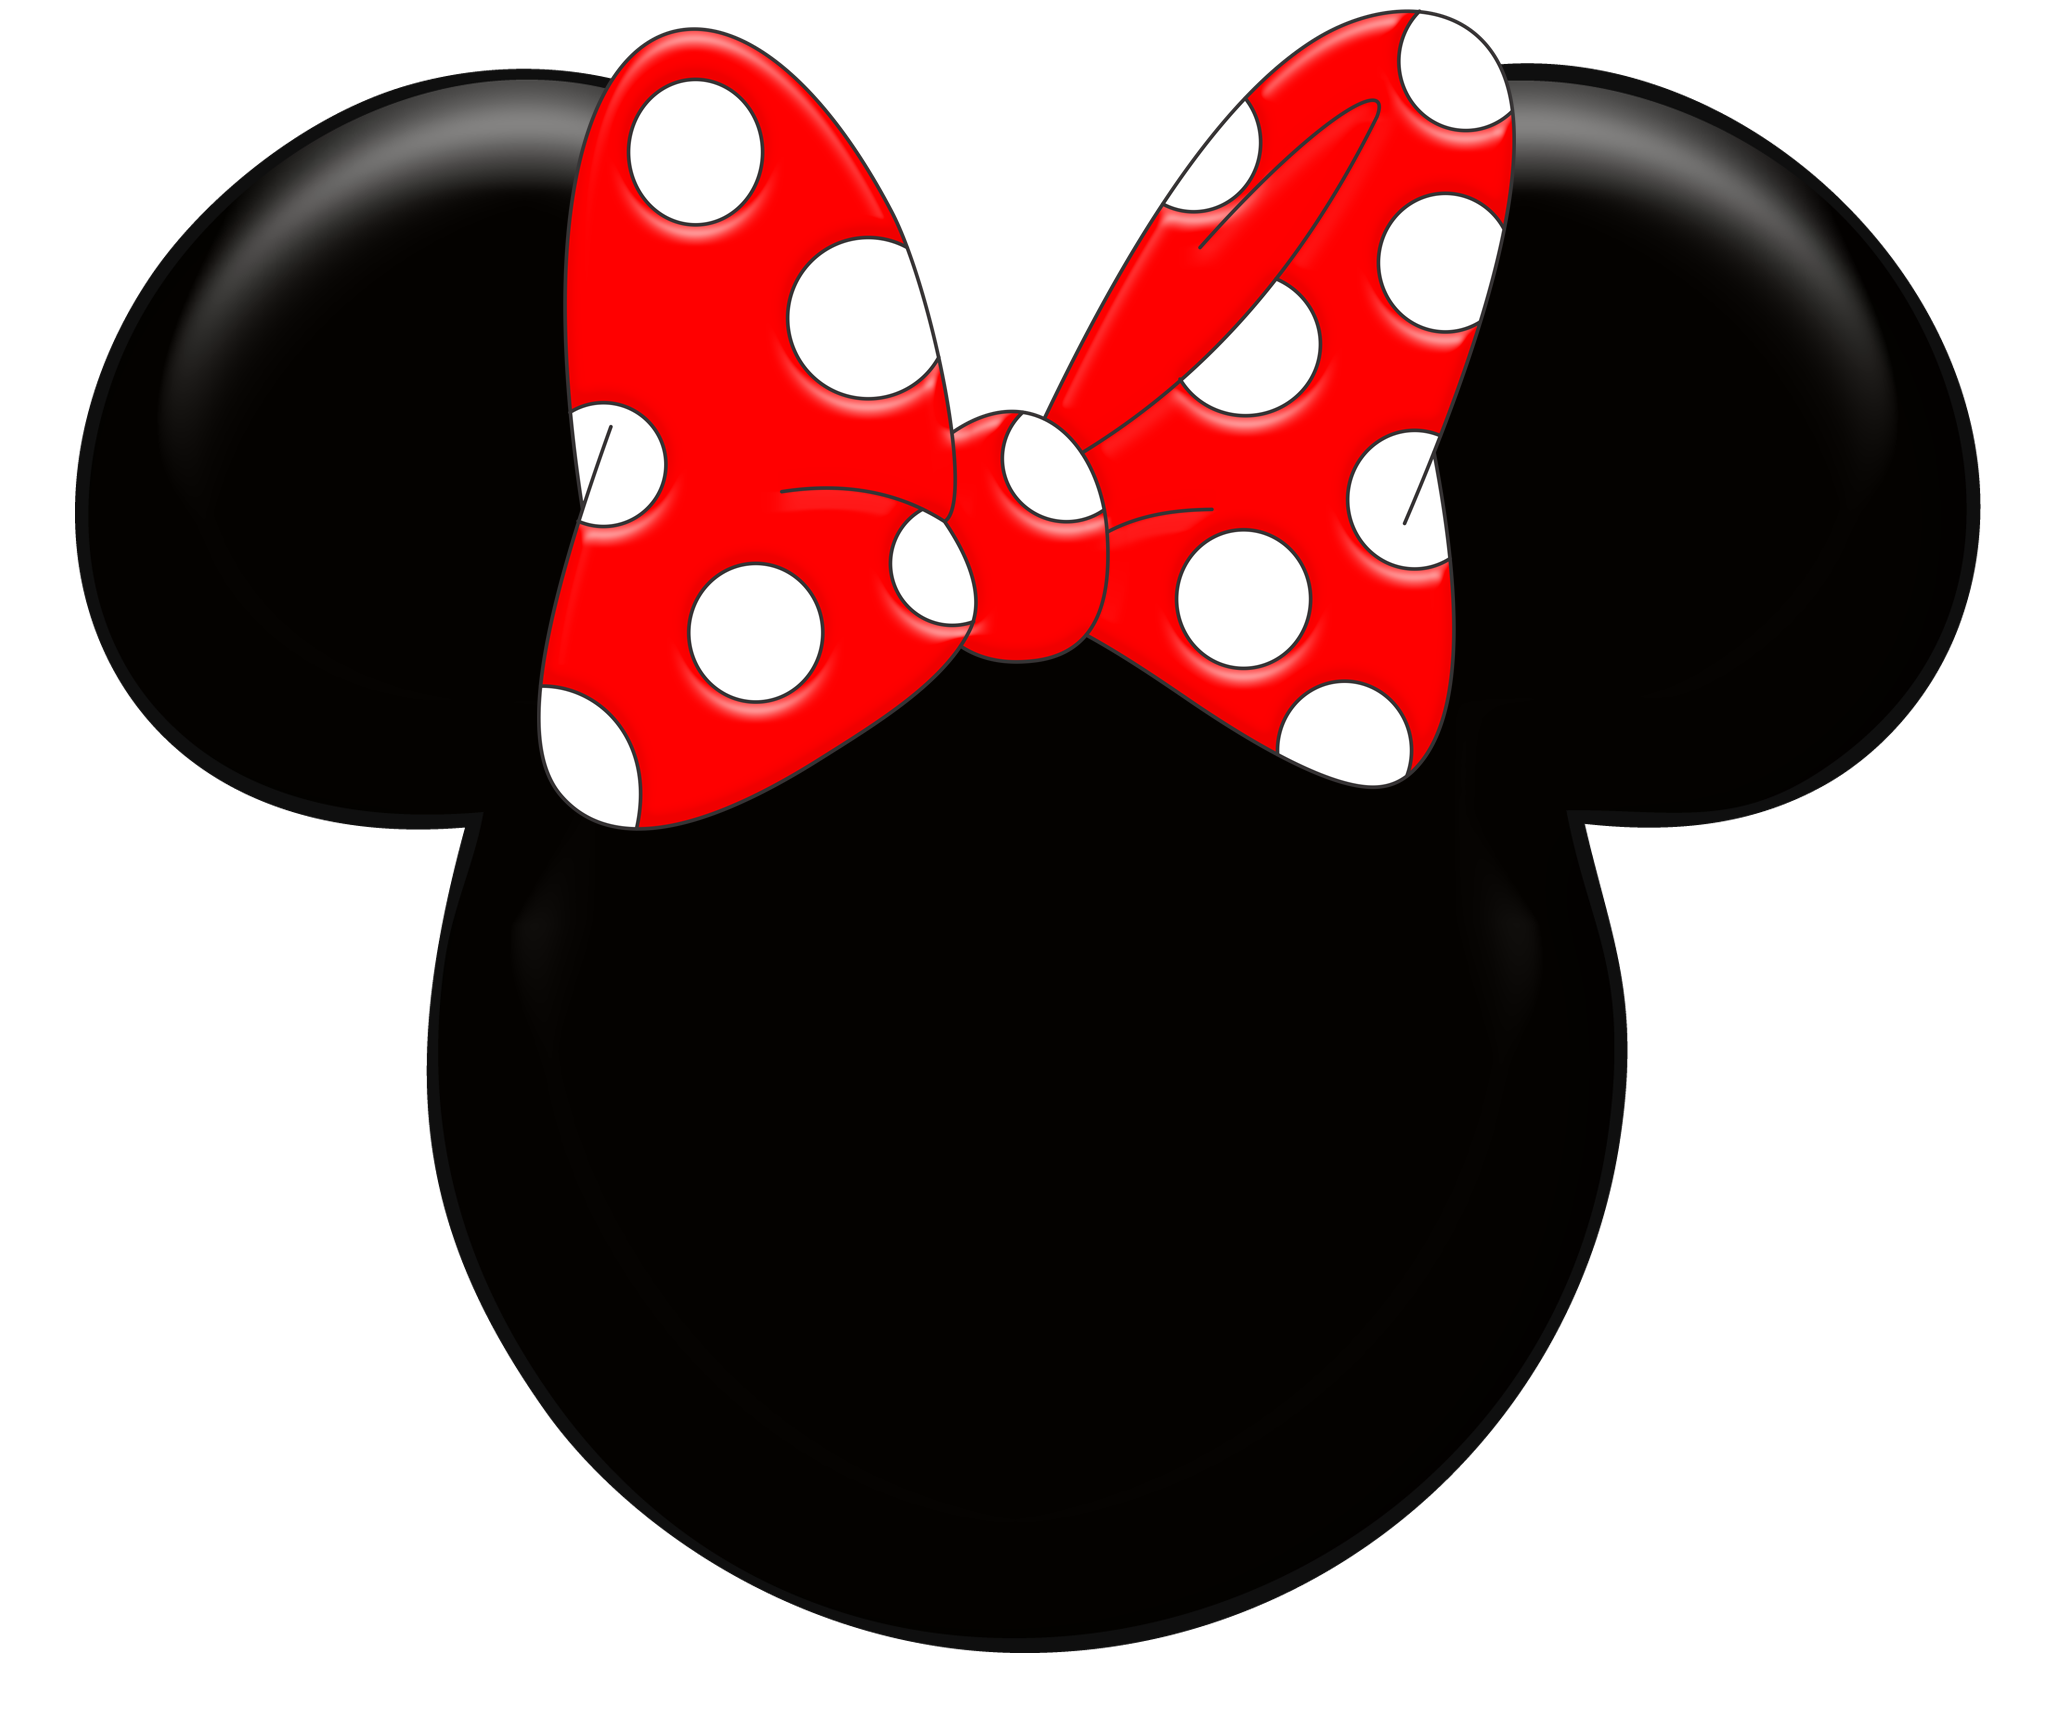 Minnie mouse head clipart banner royalty free download Red Minnie Mouse Wallpaper | Clipart Panda - Free Clipart ... banner royalty free download